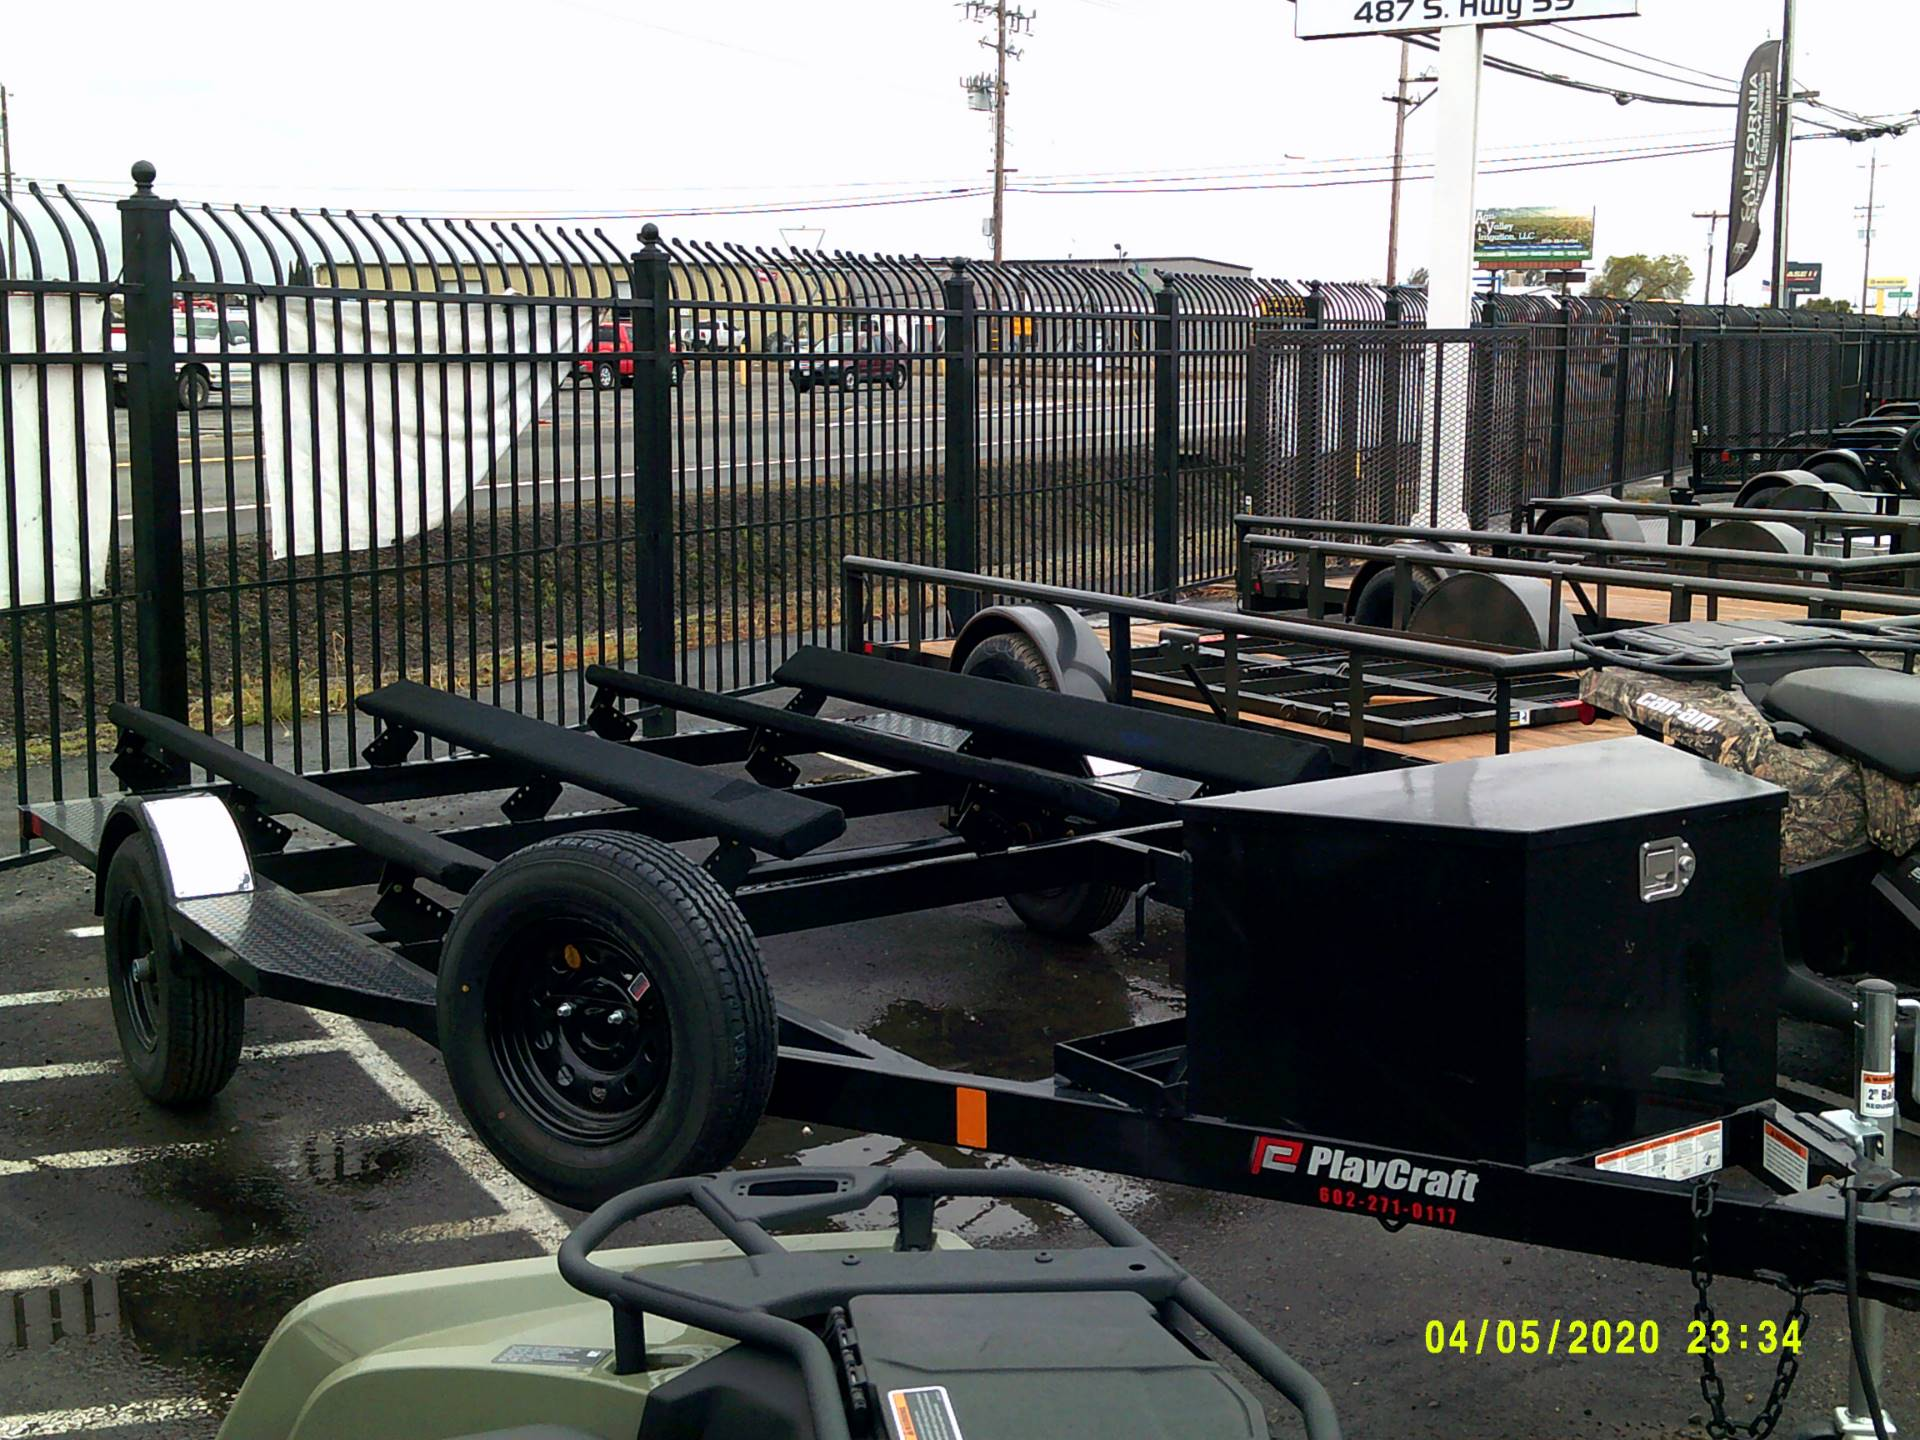 2020 PLAYCRAFT TRAILERS 2 PLACE JET SKI in Merced, California - Photo 2